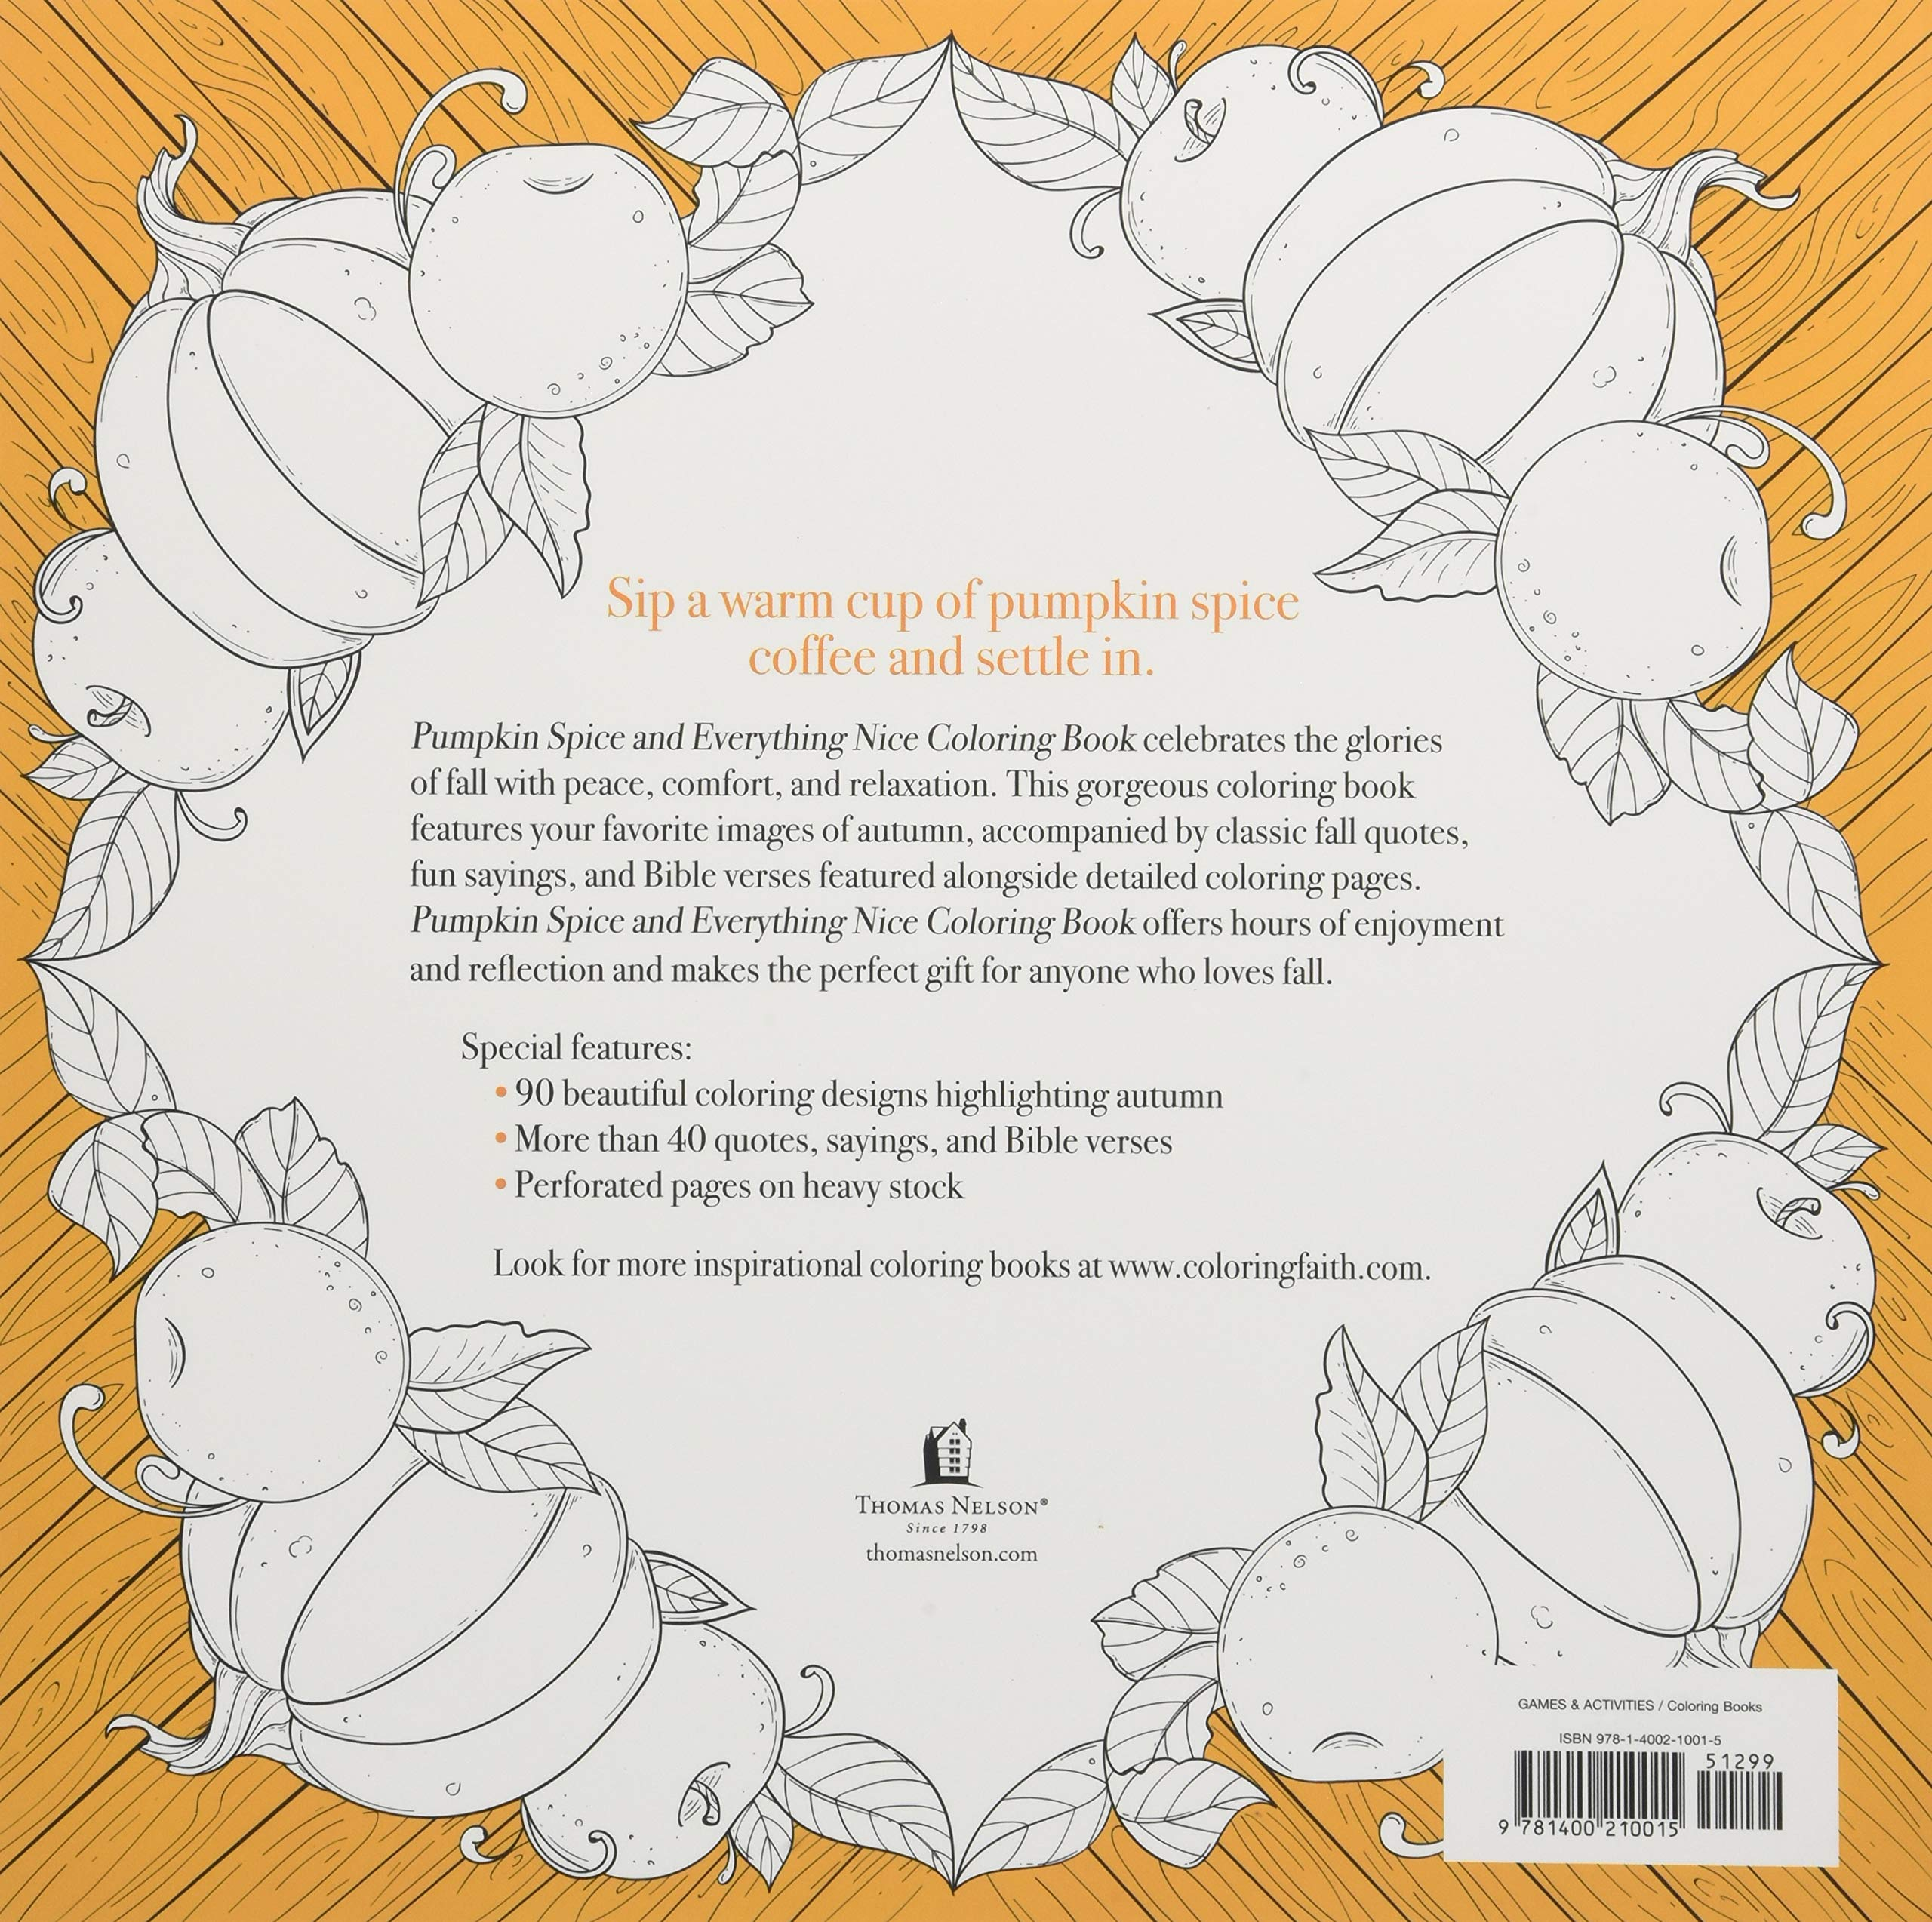 Amazon Pumpkin Spice And Everything Nice Coloring Book Faith 9781400210015 Thomas Nelson Books